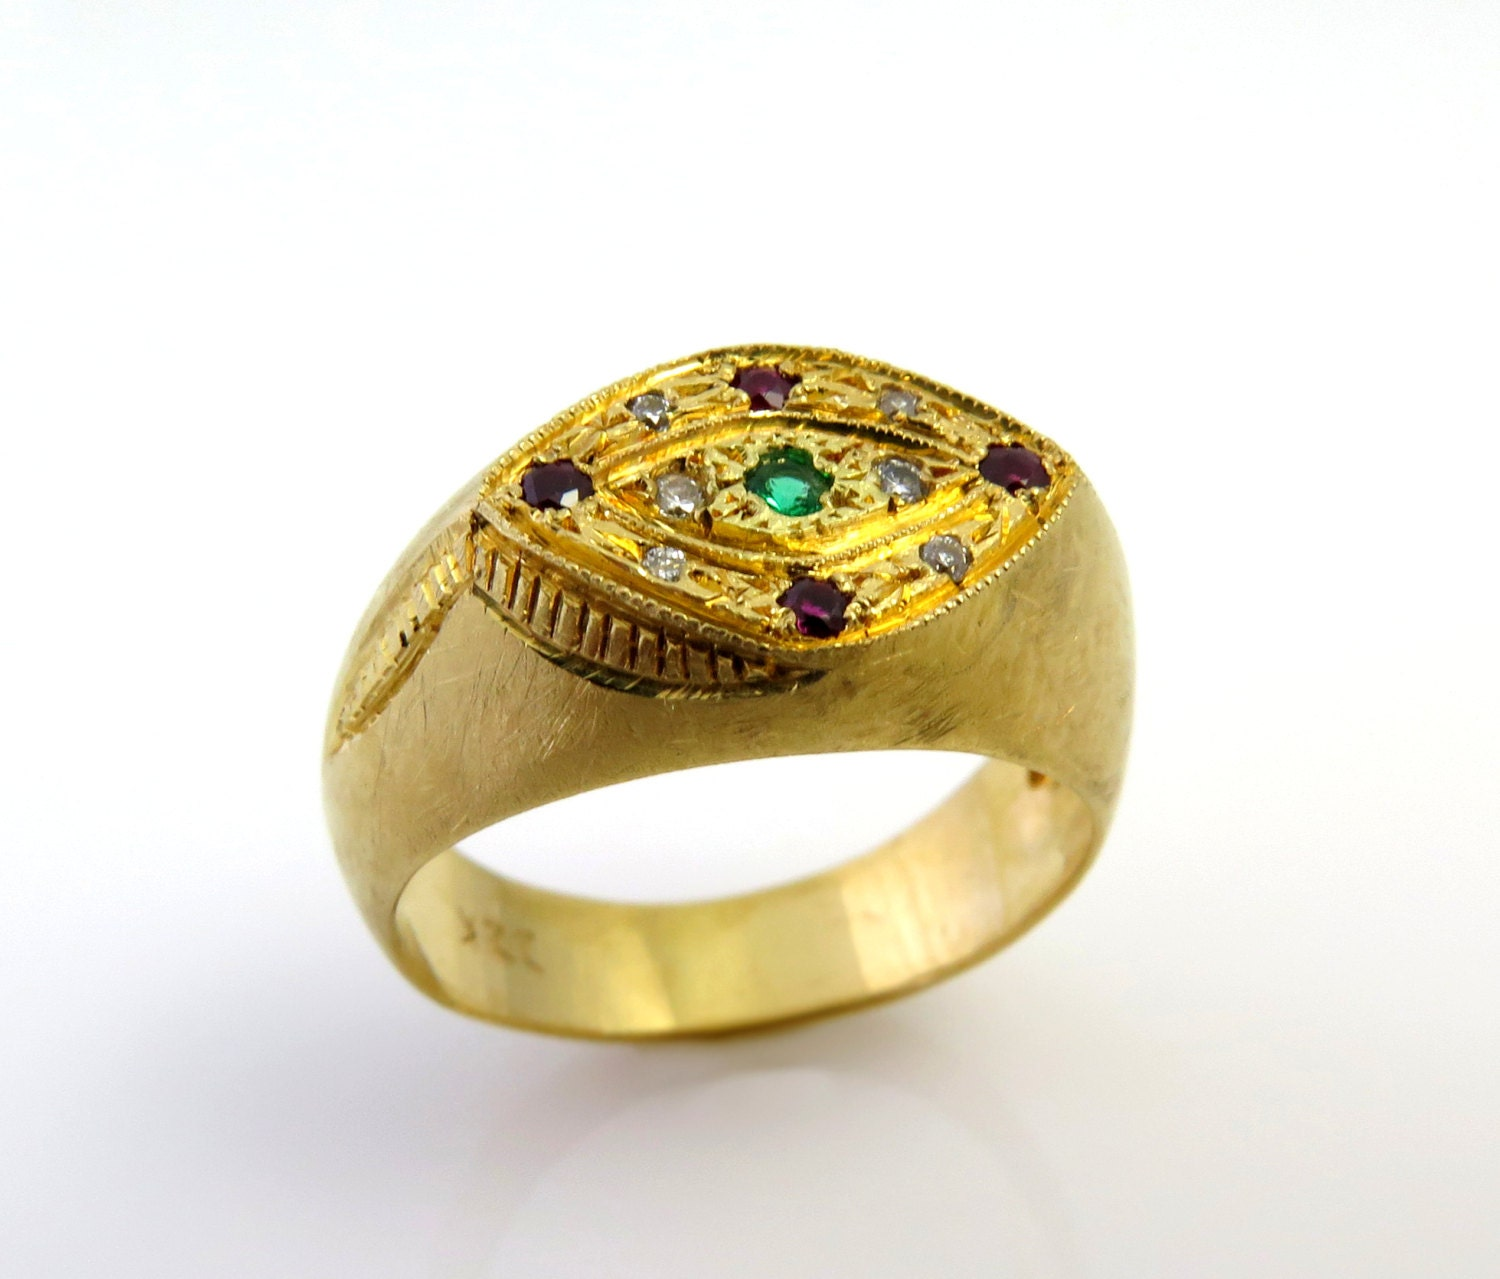 buy rings designs in ring online jewellery om gold guardian bluestone the india pics